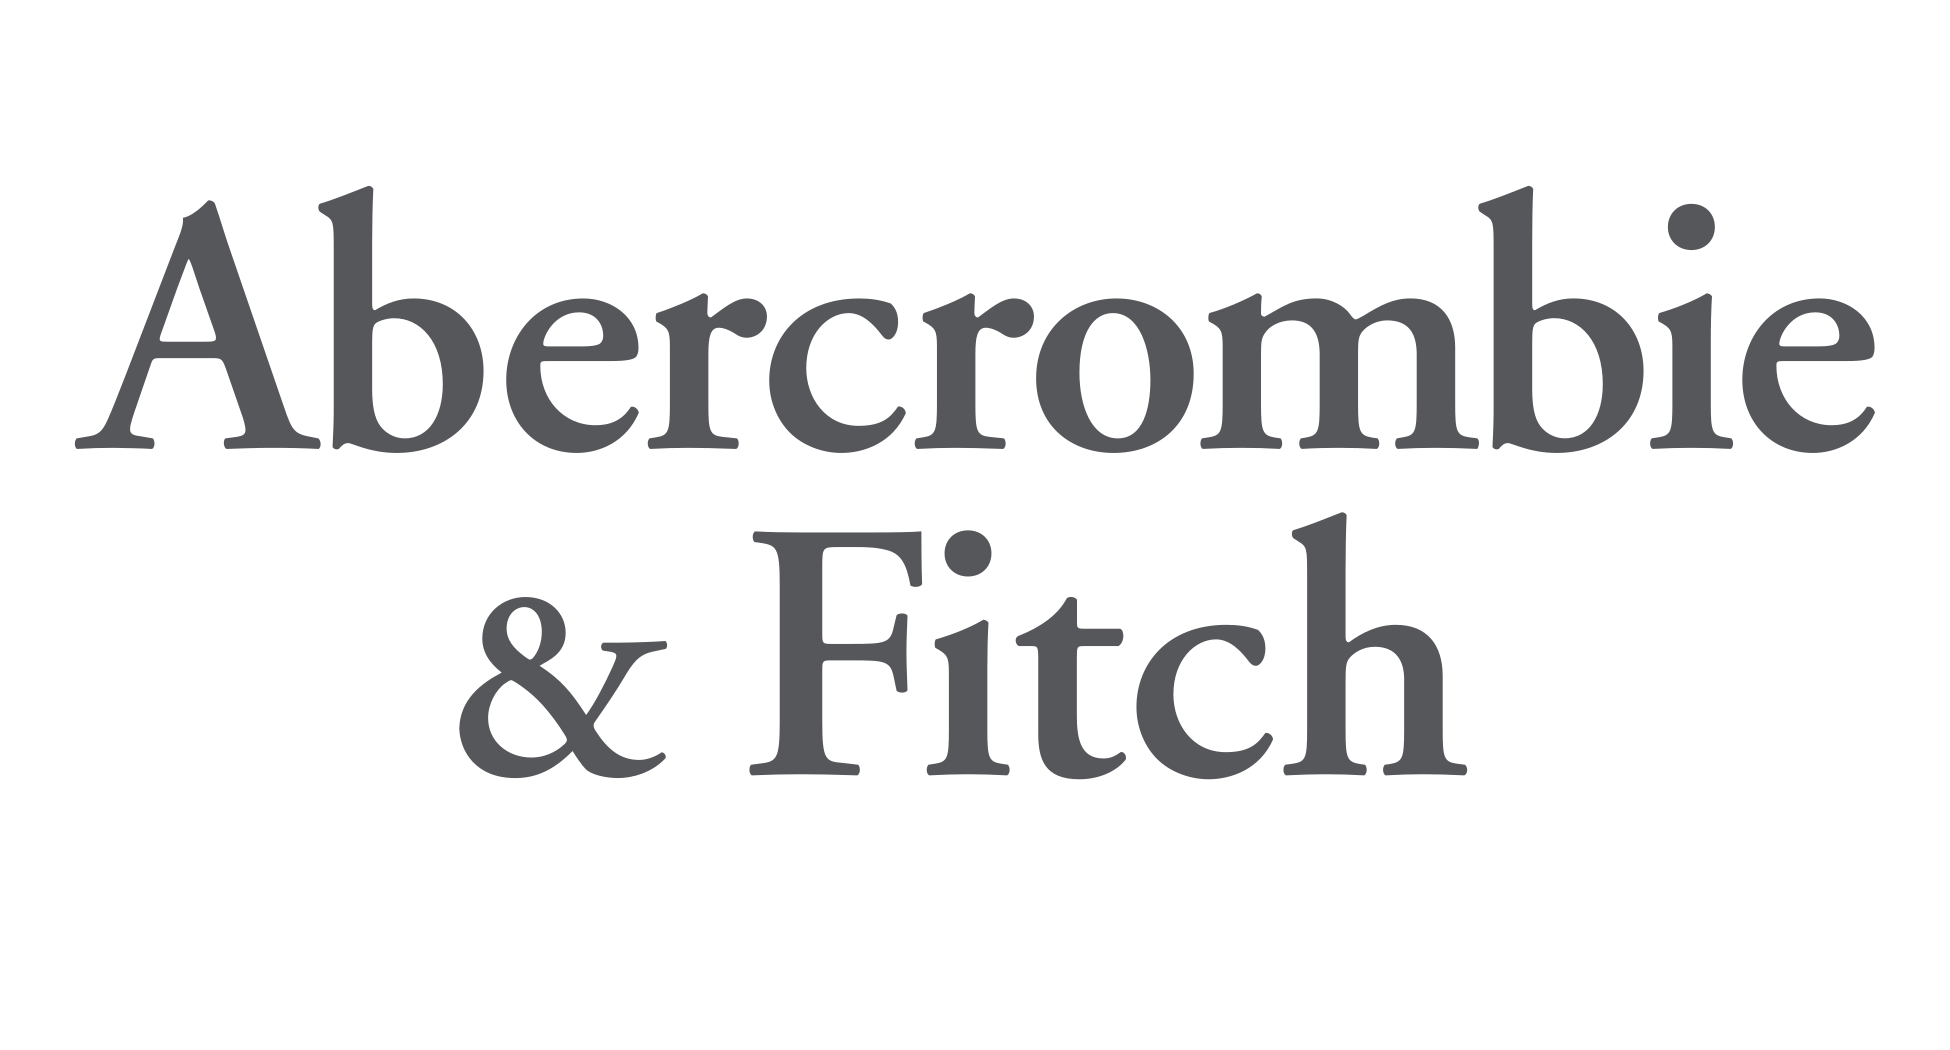 Über Abercrombie and Fitch